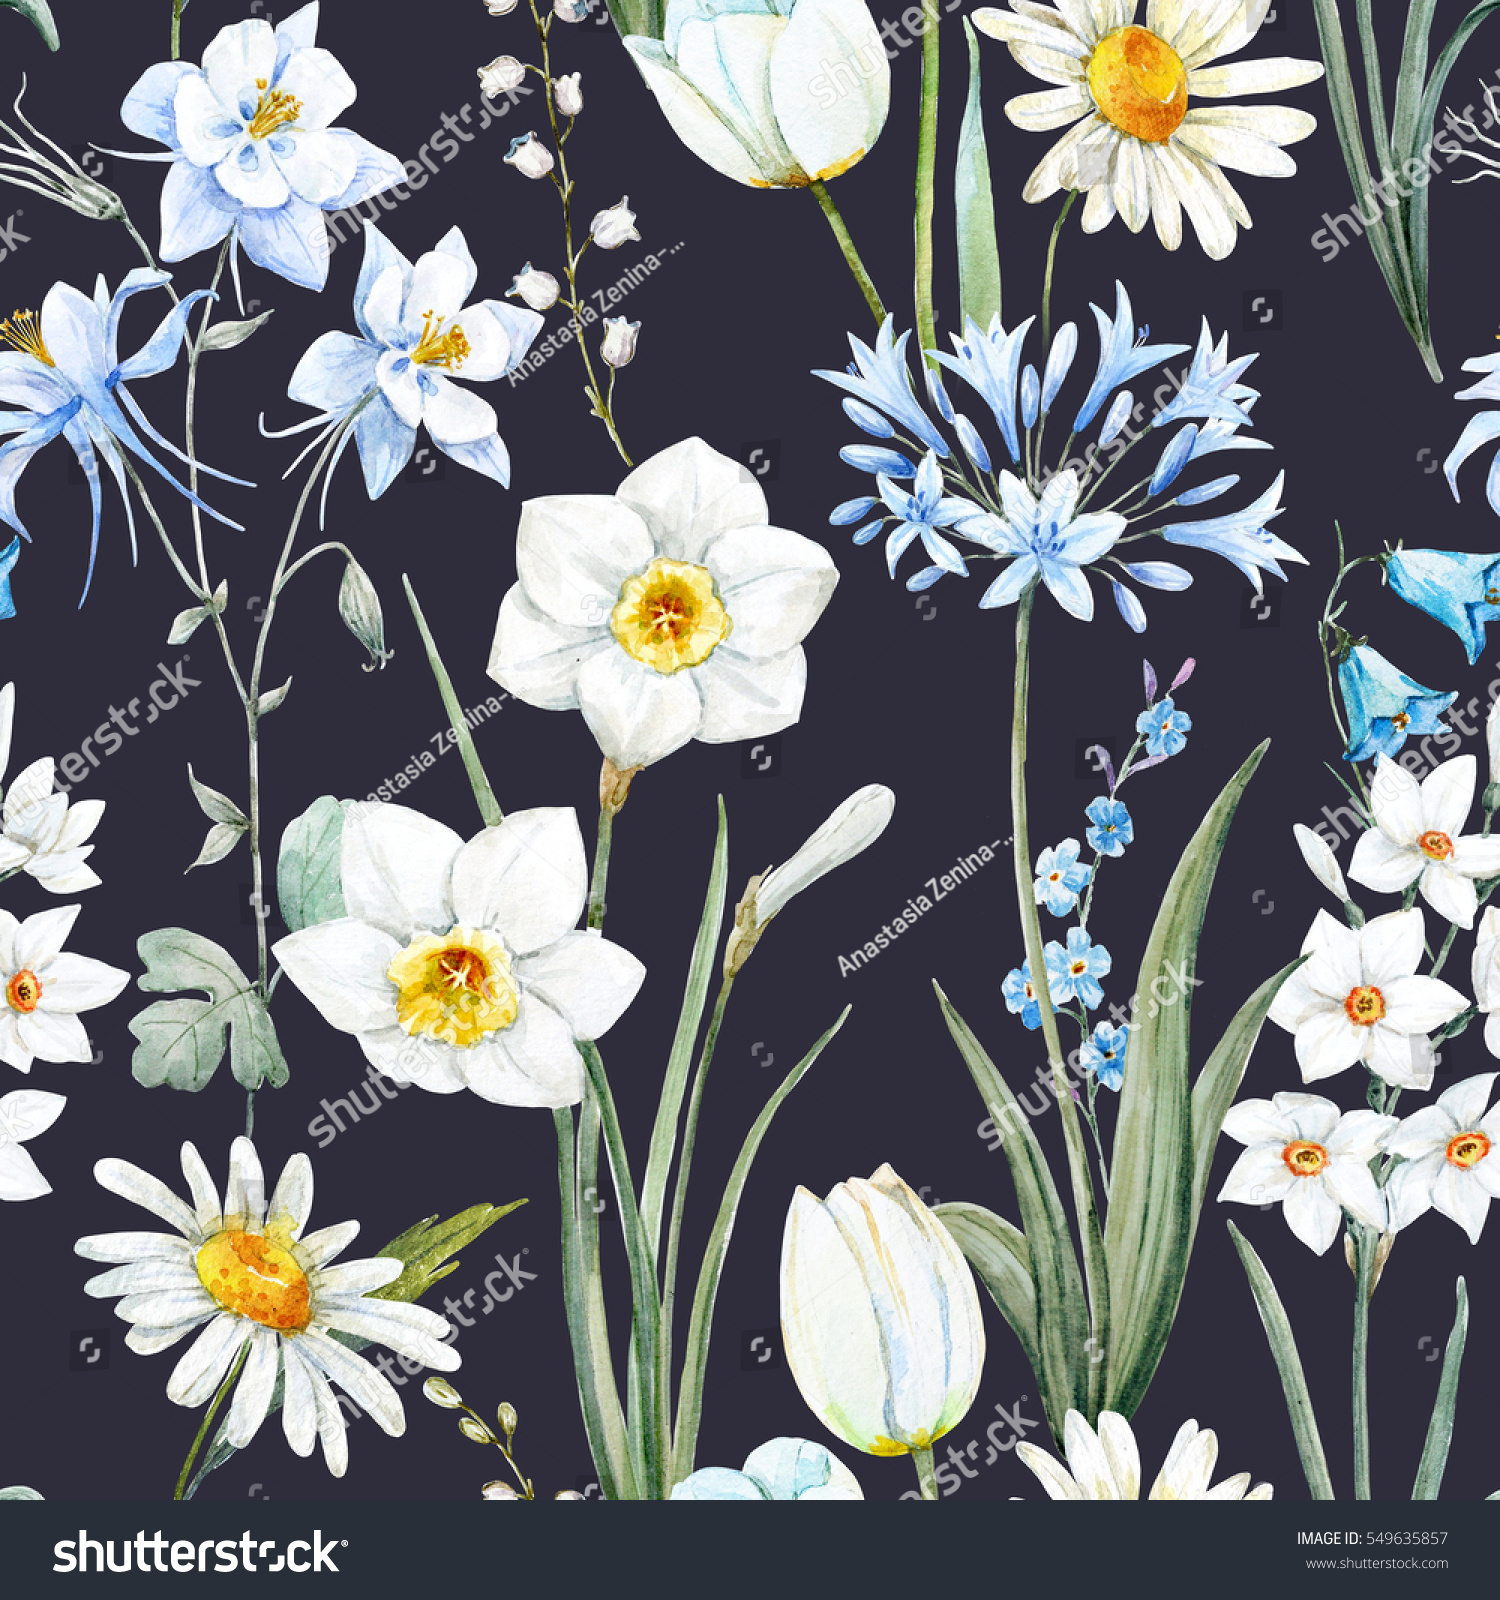 Watercolor botanical floral pattern wallpaper spring daffodil